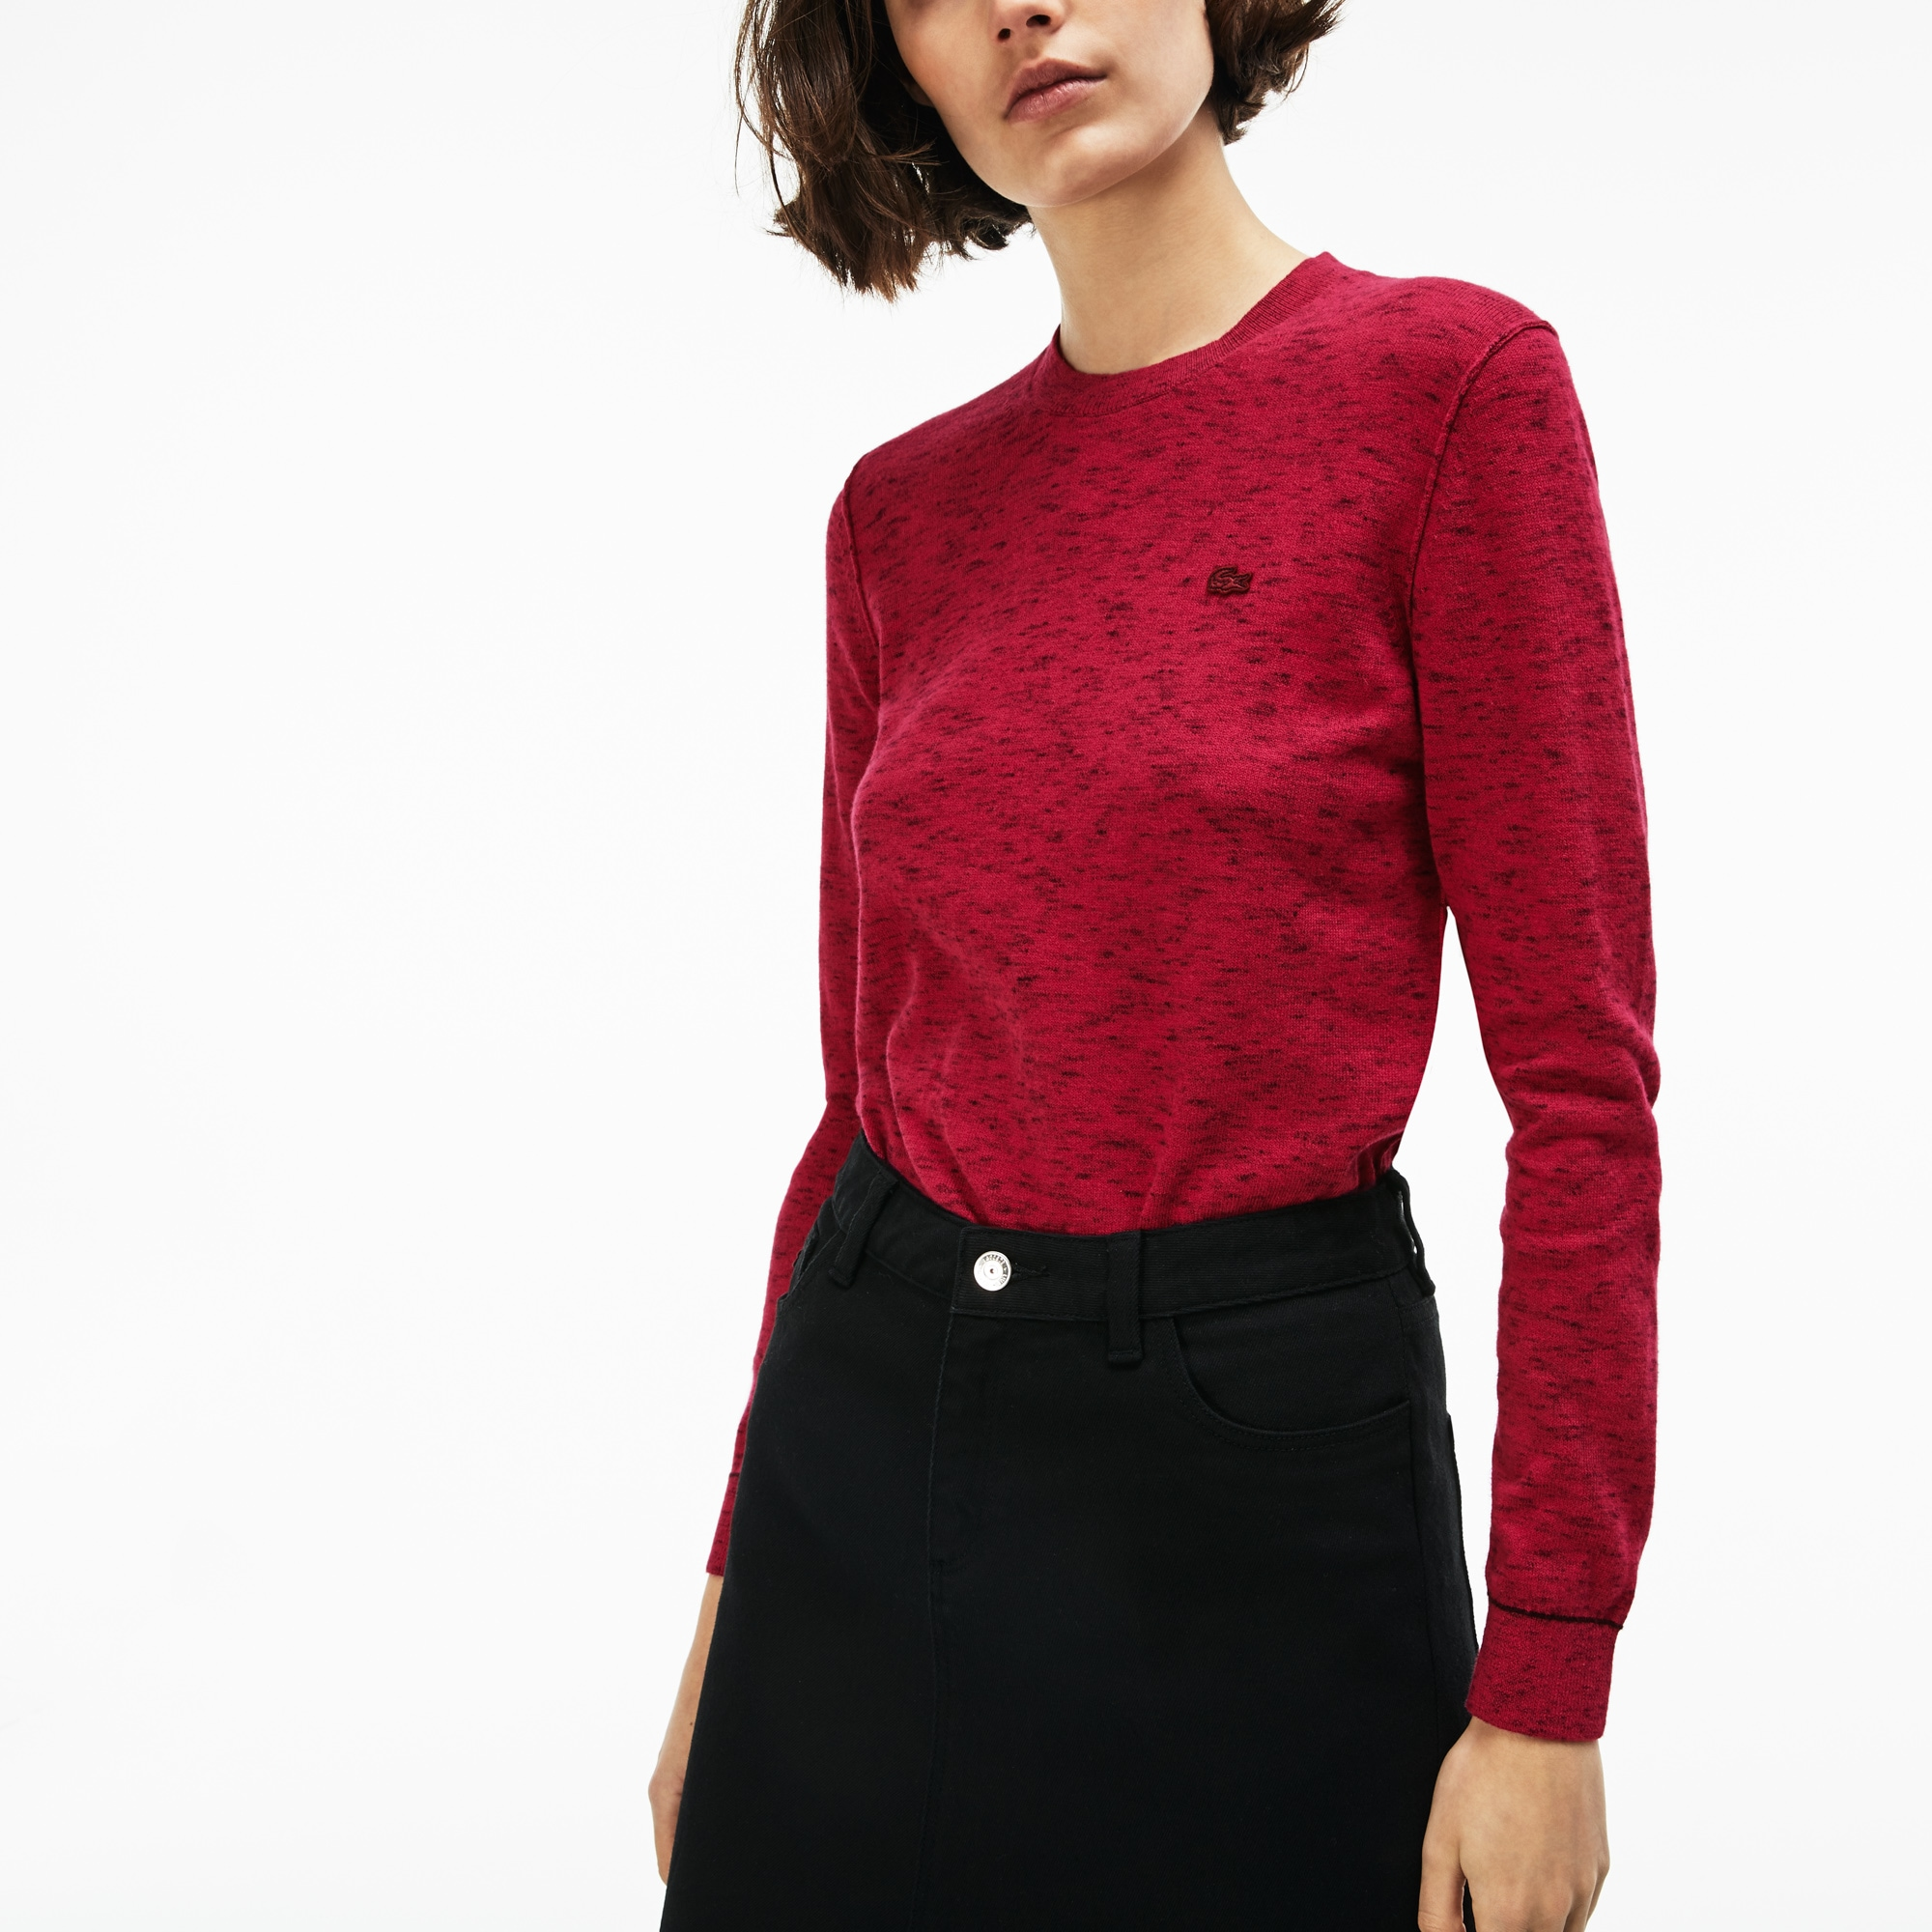 a7c1a57f9b Women's Lacoste LIVE Crew Neck Cotton And Cashmere Jersey Sweater